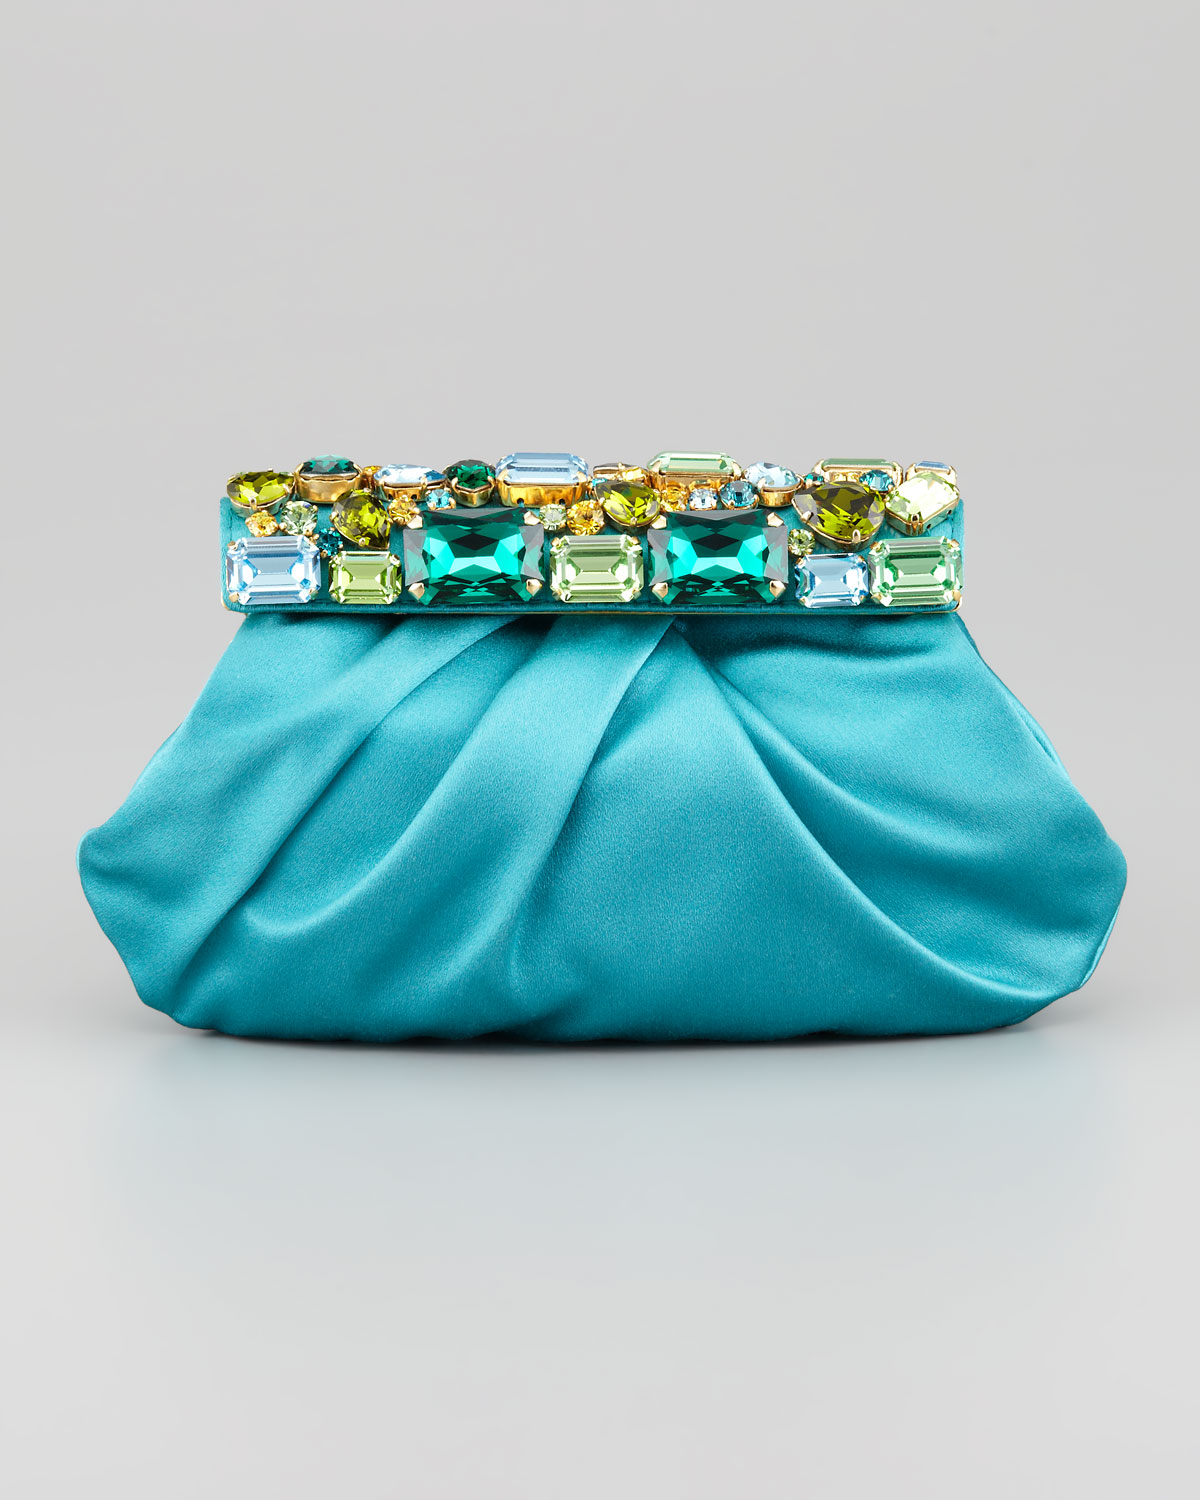 prada pink leather handbag - Prada Raso Jeweled Satin Clutch Bag in Blue (pavone) | Lyst